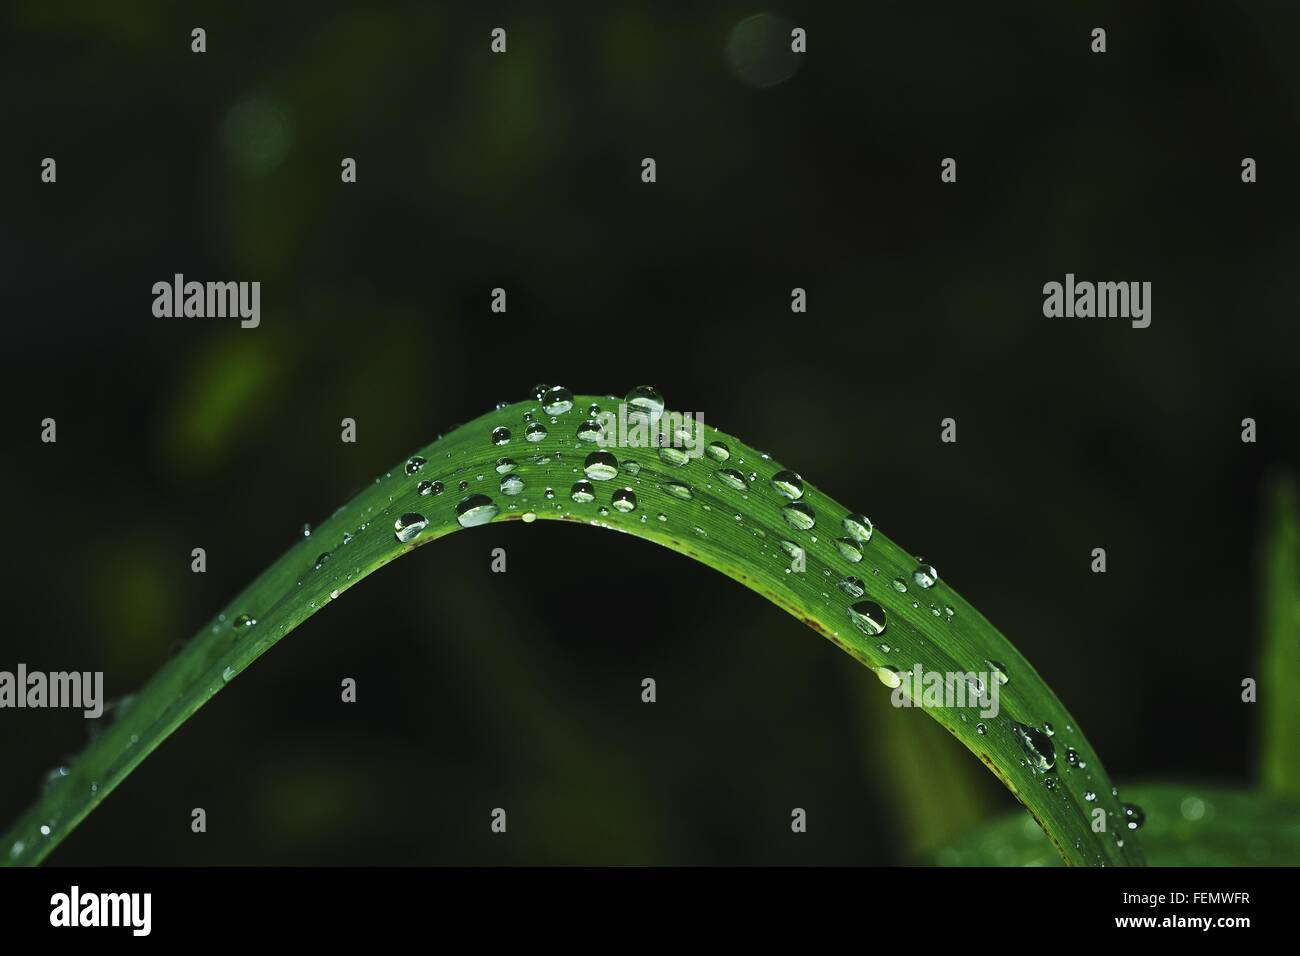 Close-Up Of Raindrops On Blade Of Grass - Stock Image